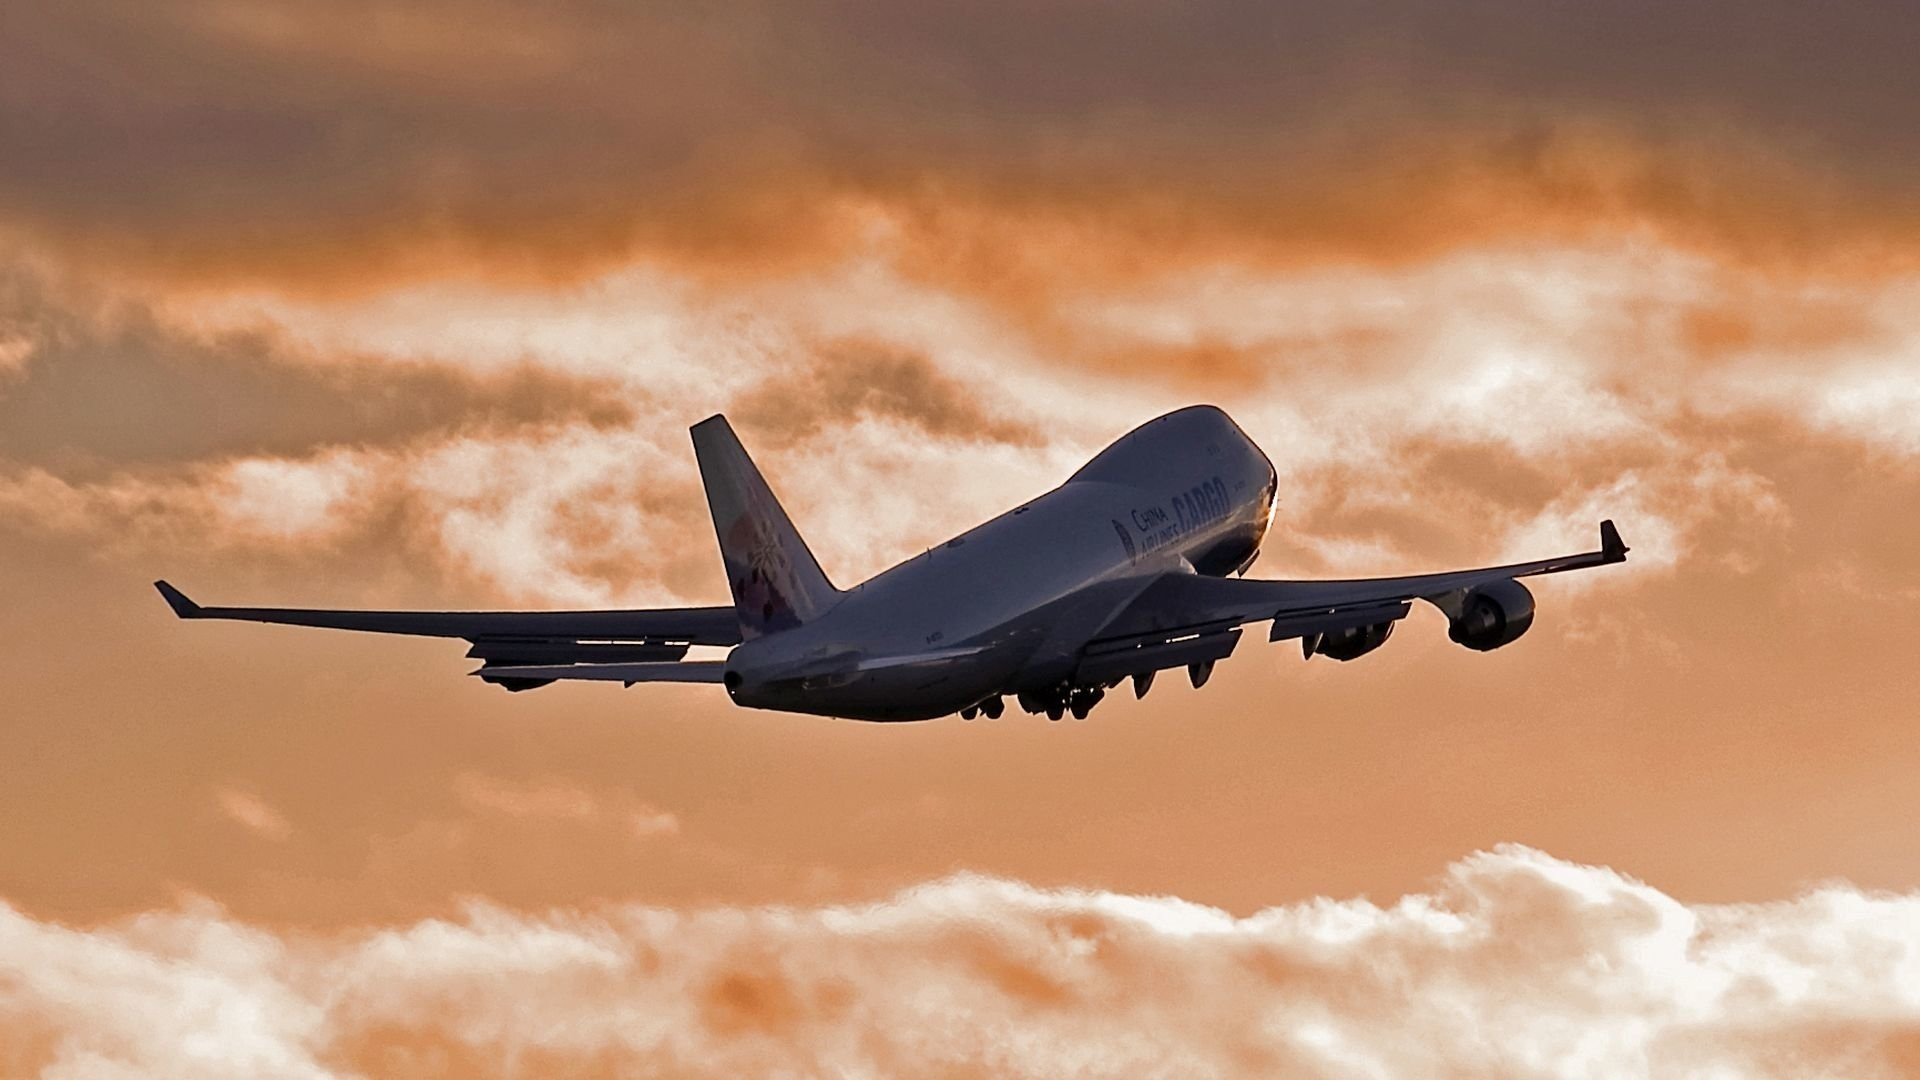 Boeing 747 Wallpaper 75 Pictures